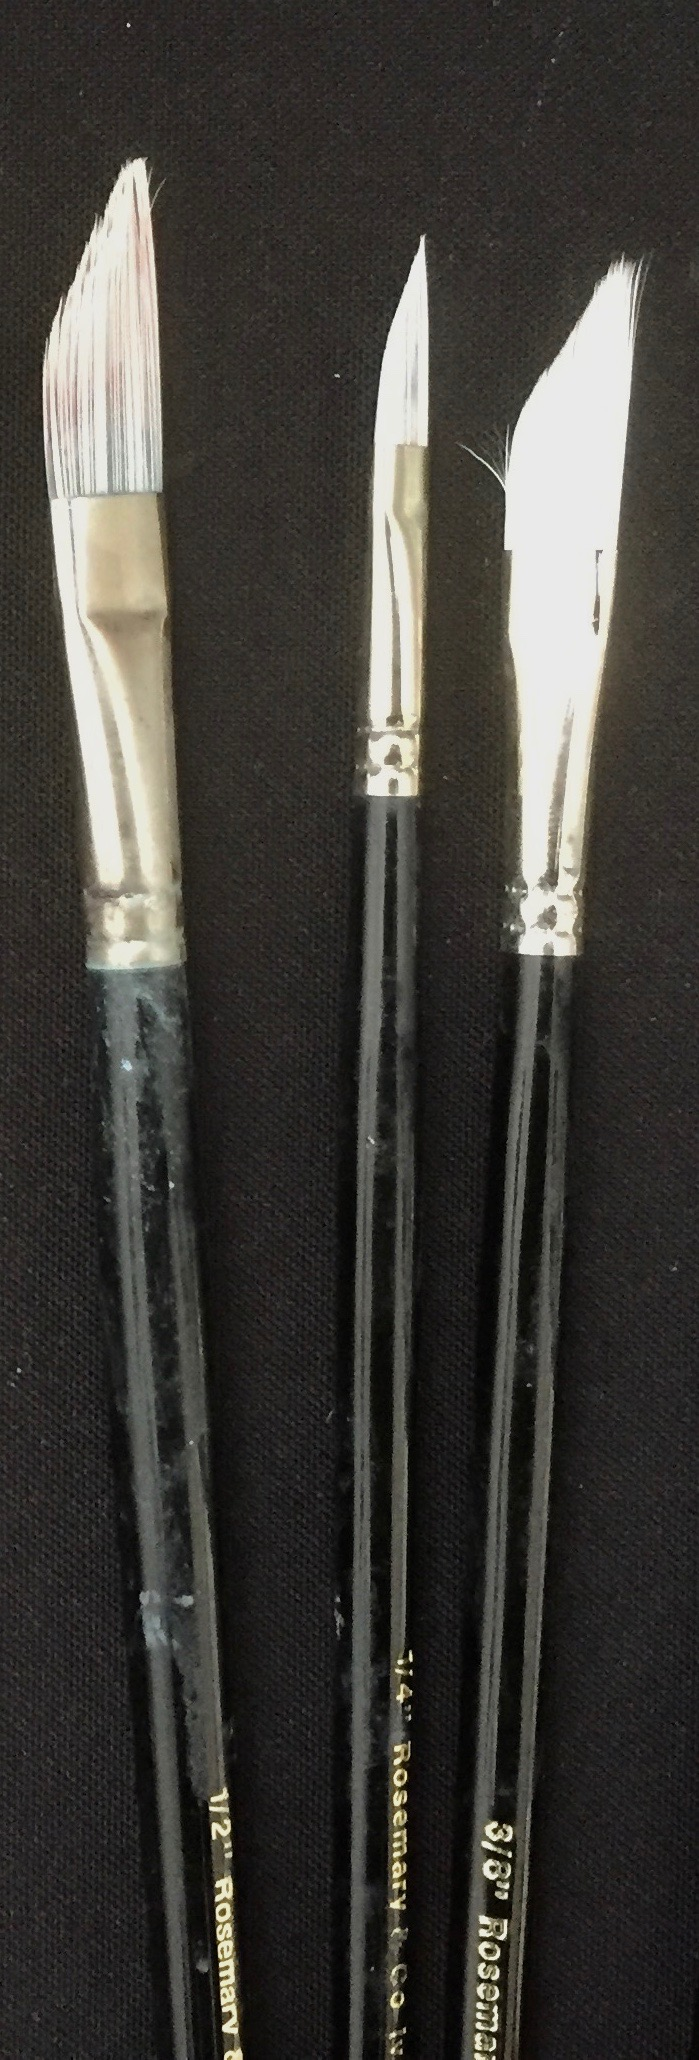 Dagger brushes.